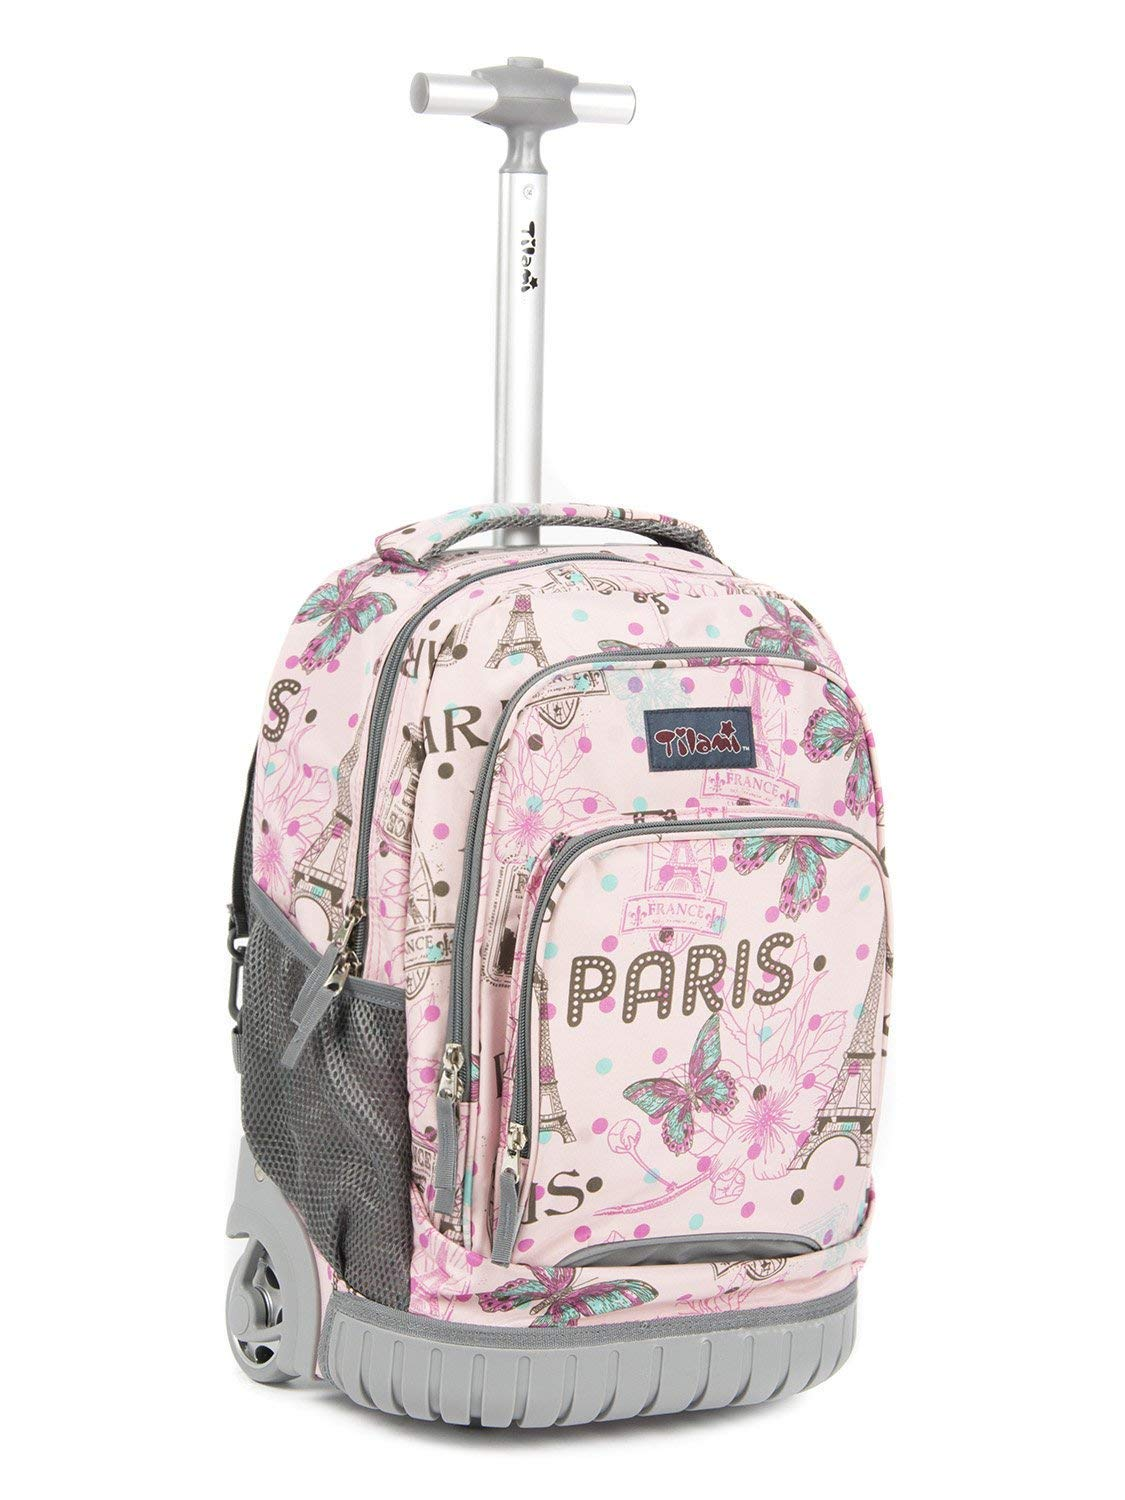 Tilami Rolling Backpack Armor Luggage School Travel Book Laptop 18 Inch Multifunction Wheeled Backpack for Kids and Students (Pink Butterfly 1)